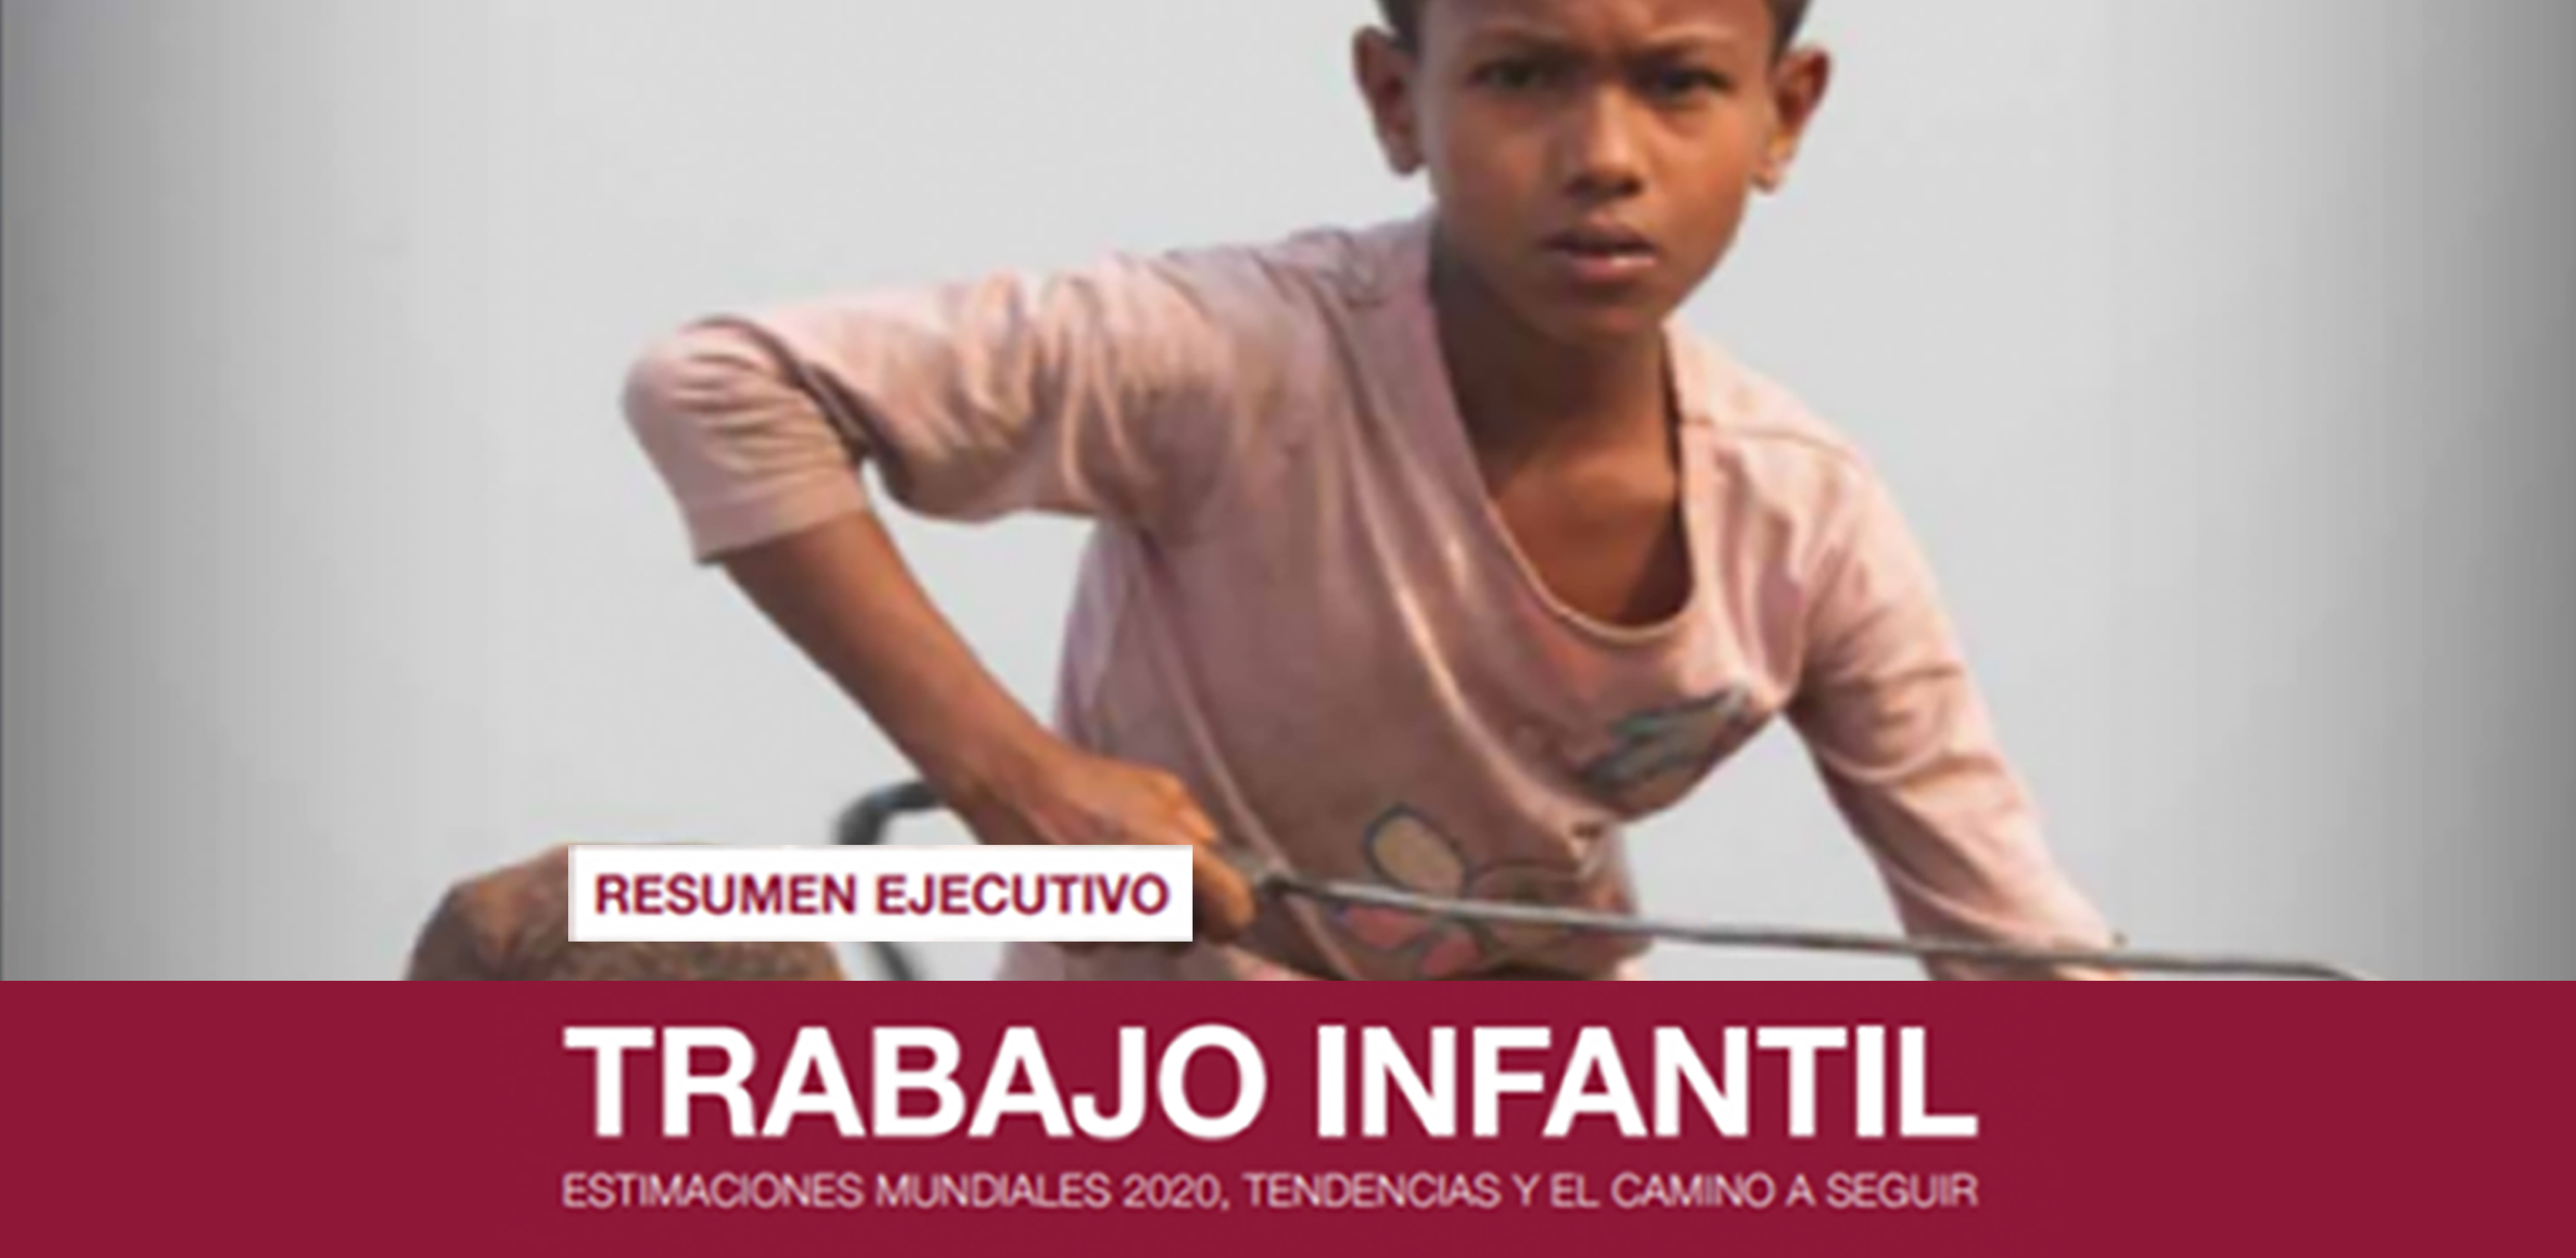 Latin America and the Caribbean move away from the goal of eliminating child labor due to the pandemic